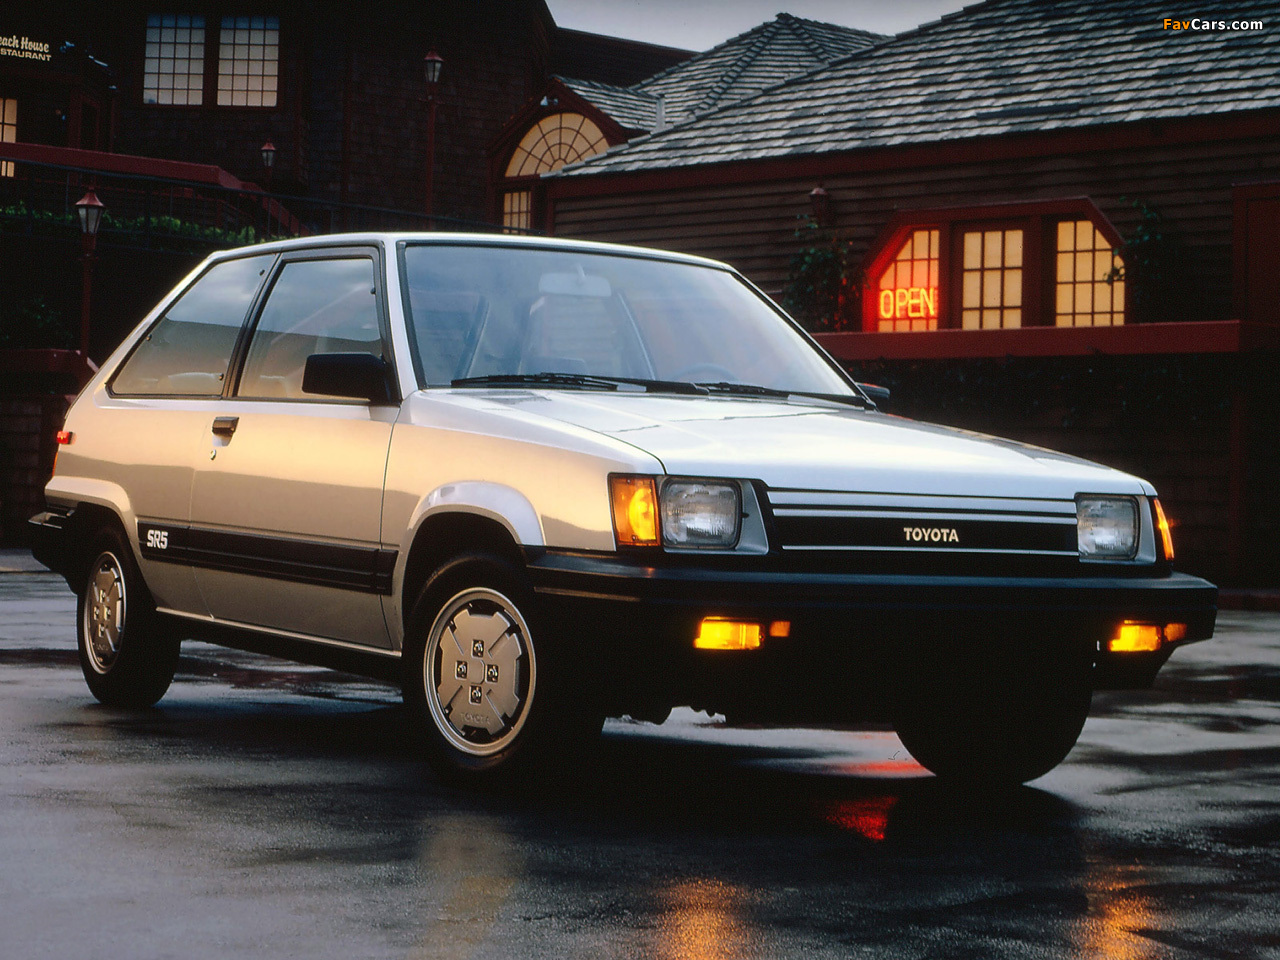 Toyota Tercel Sr5 198387 Wallpapers 1990 Hatchback